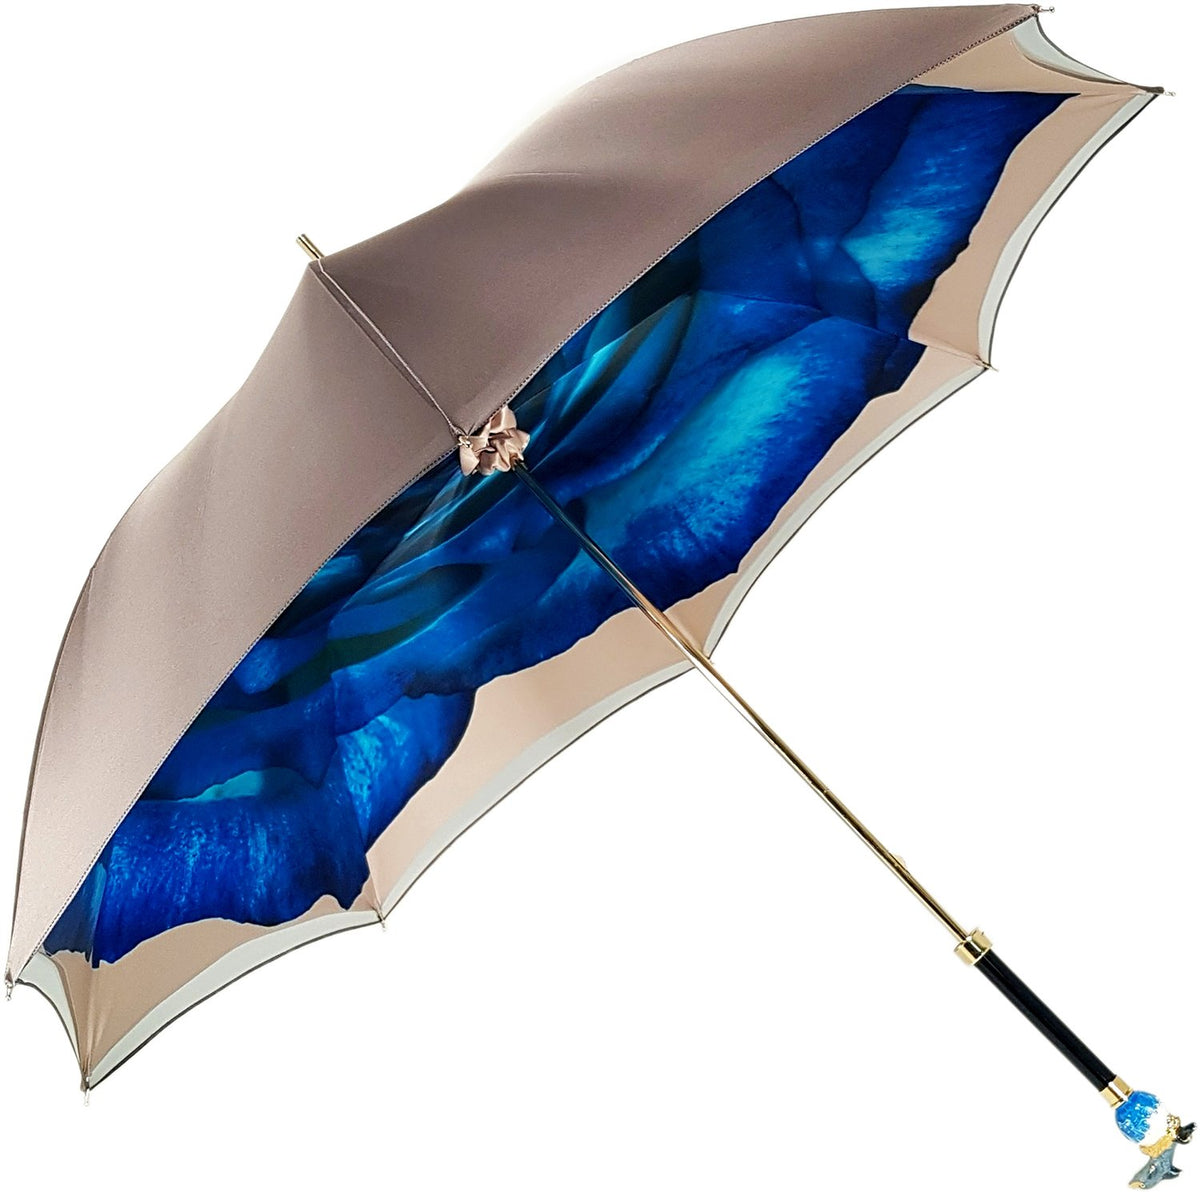 Awesome Dolphin Umbrella - Blue Rose Inside - il-marchesato